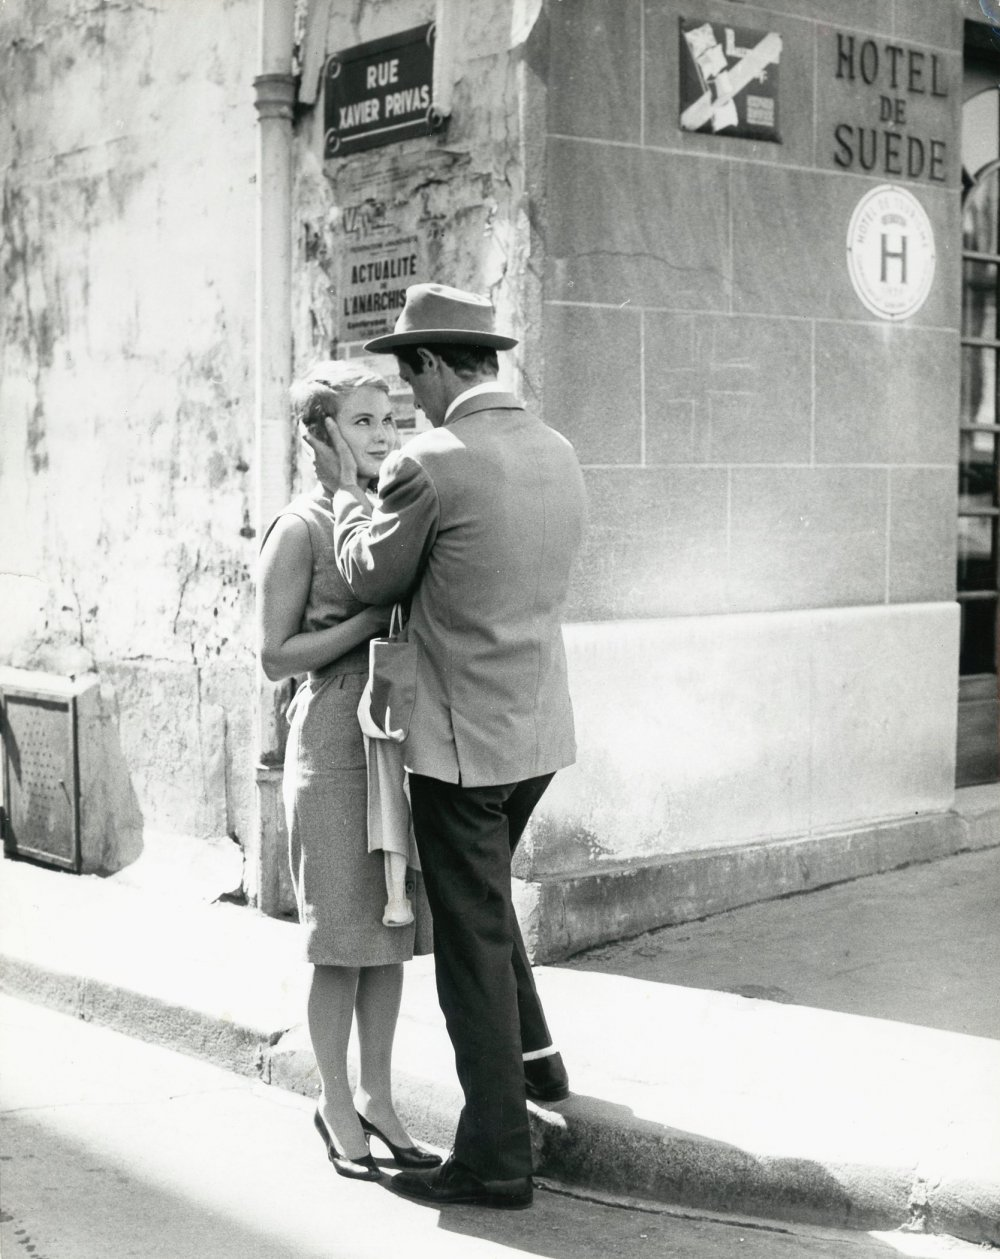 'A film cameraman ought never to let himself forget that the eye of the spectator is naturally tuned to full daylight': Jean Seberg and Jean-Pierre Belmondo on location in Paris for A Bout de souffle (1960)